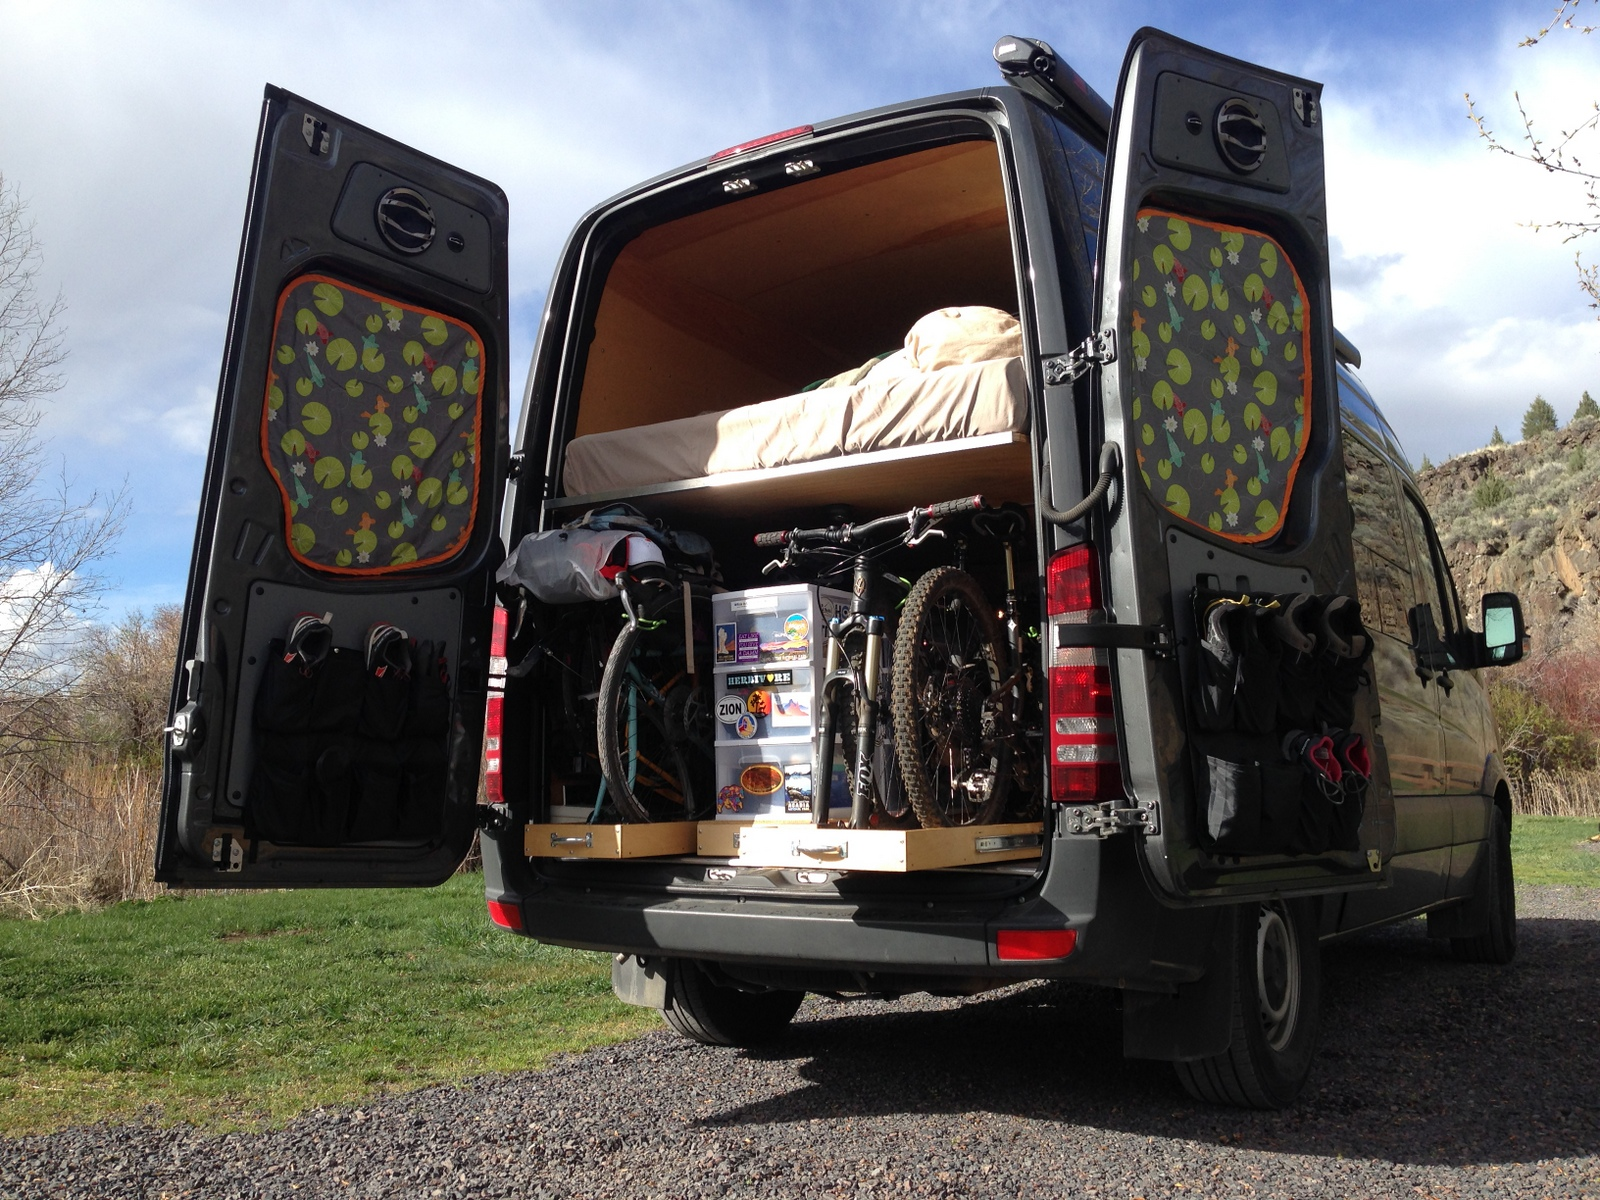 The adventure mobile our diy sprinter camper van bicycle hauler sprinter van bike and gear garage the drawers on the leftright pull out solutioingenieria Images